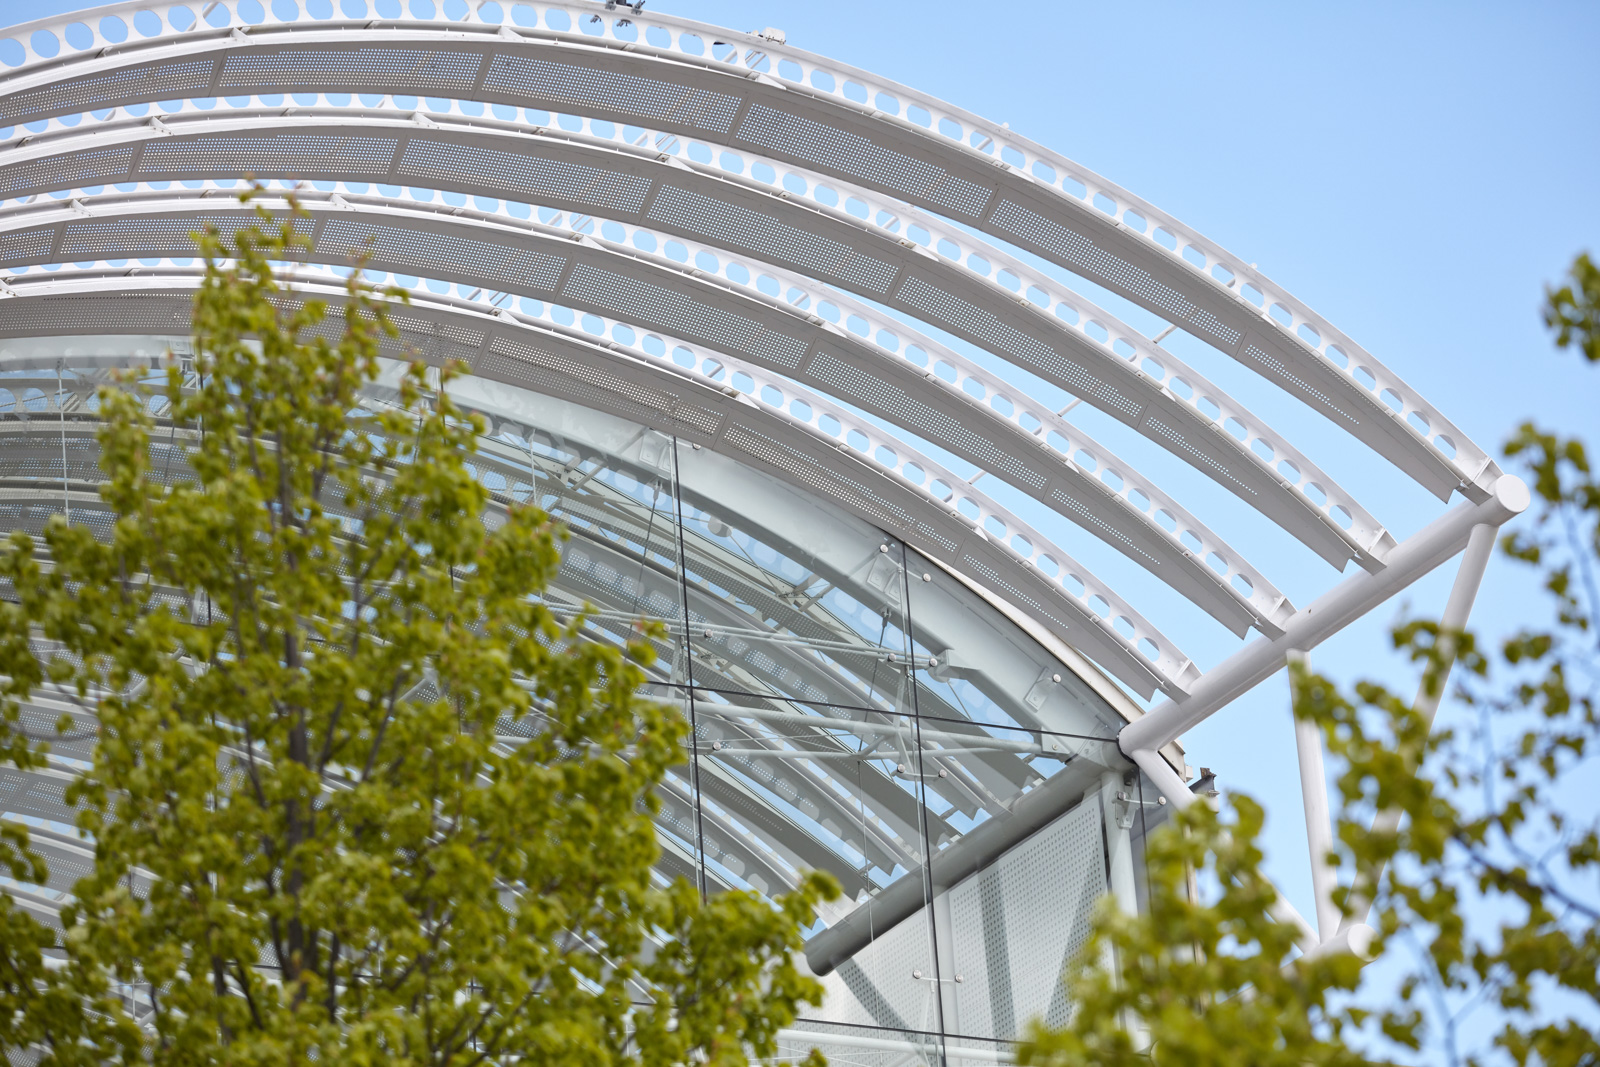 THE_MALL_ARCHITECTURE_067.jpg